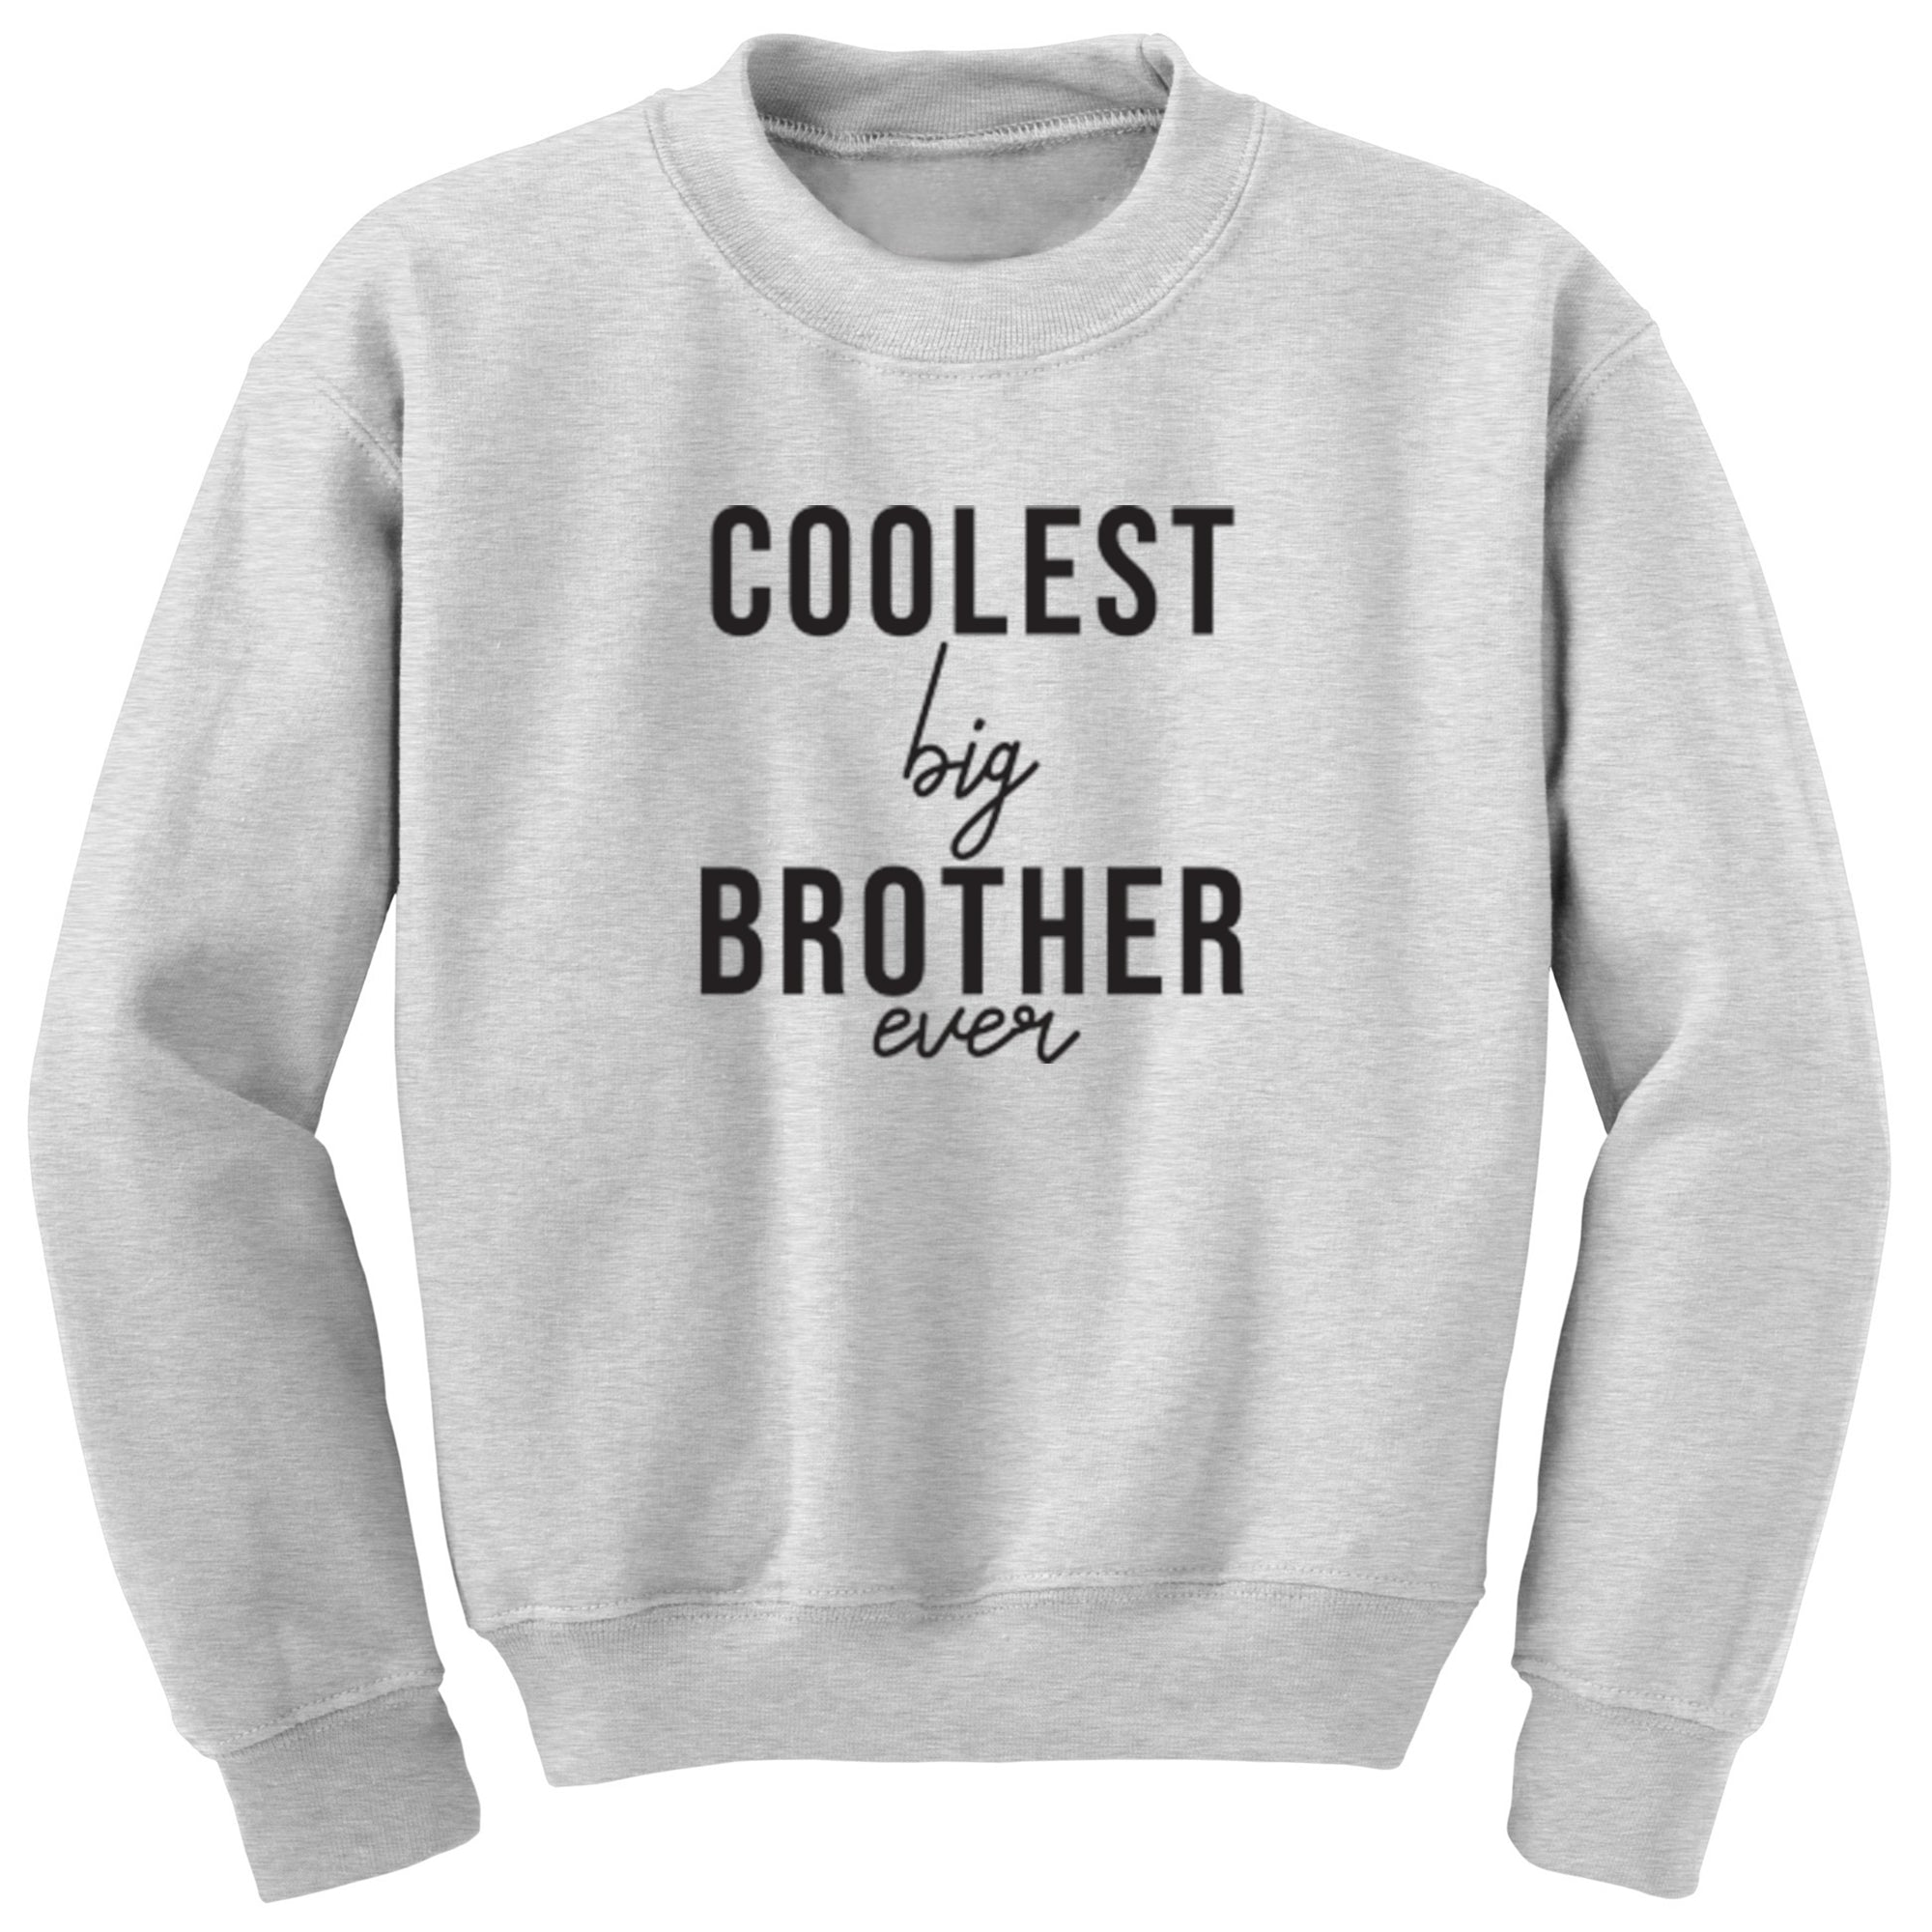 Coolest Big Brother Ever Childrens Ages 3/4-12/14 Unisex Jumper S0523 - Illustrated Identity Ltd.